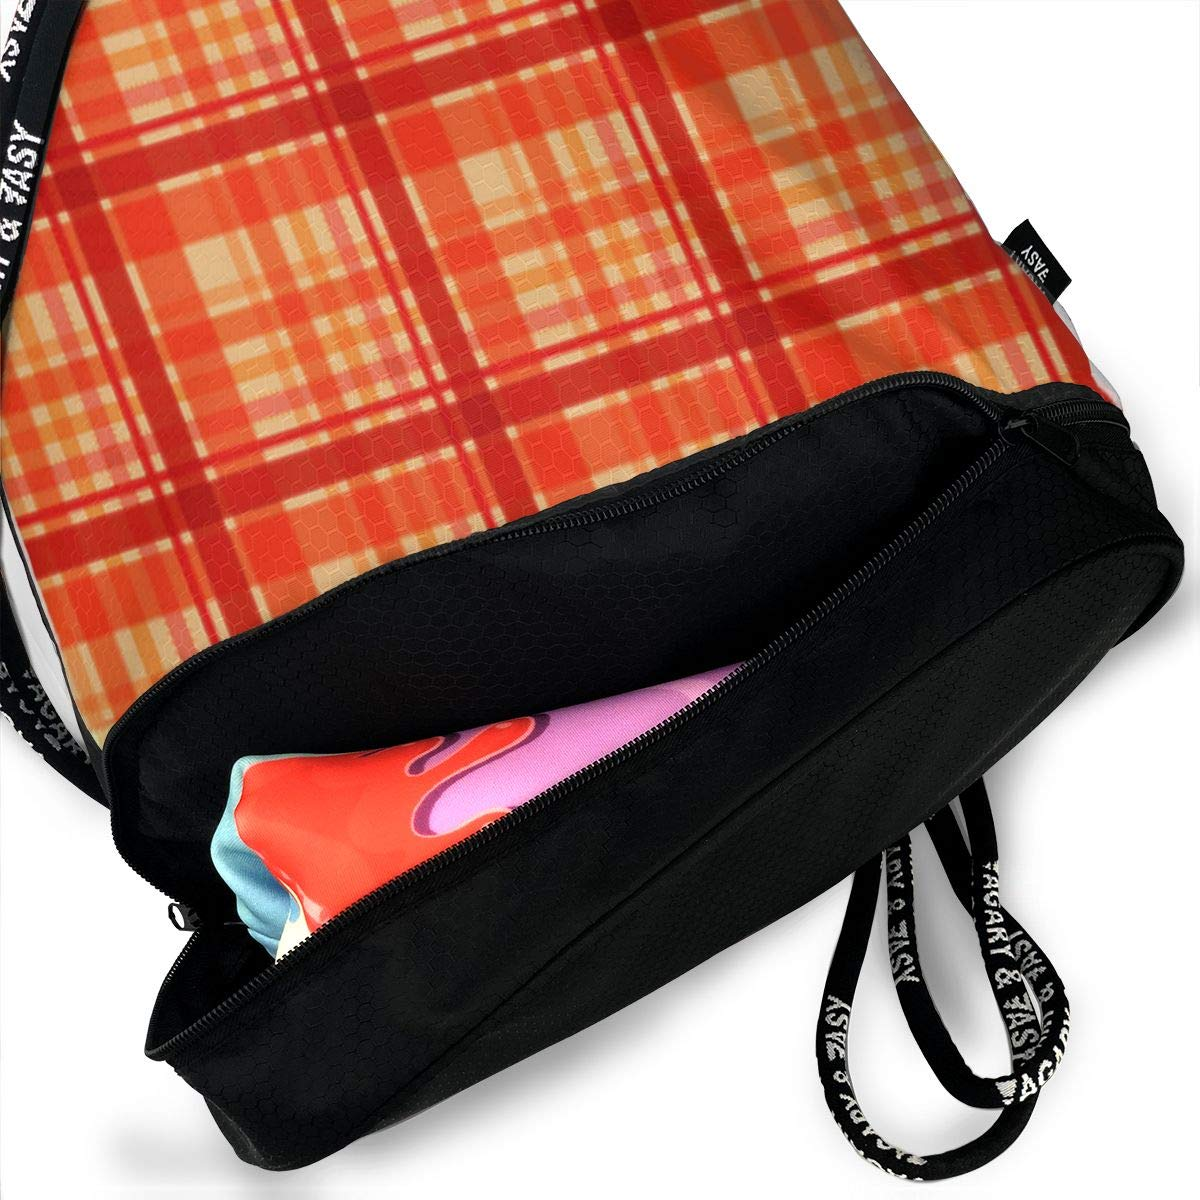 HUOPR5Q Classic Red Plaid Drawstring Backpack Sport Gym Sack Shoulder Bulk Bag Dance Bag for School Travel